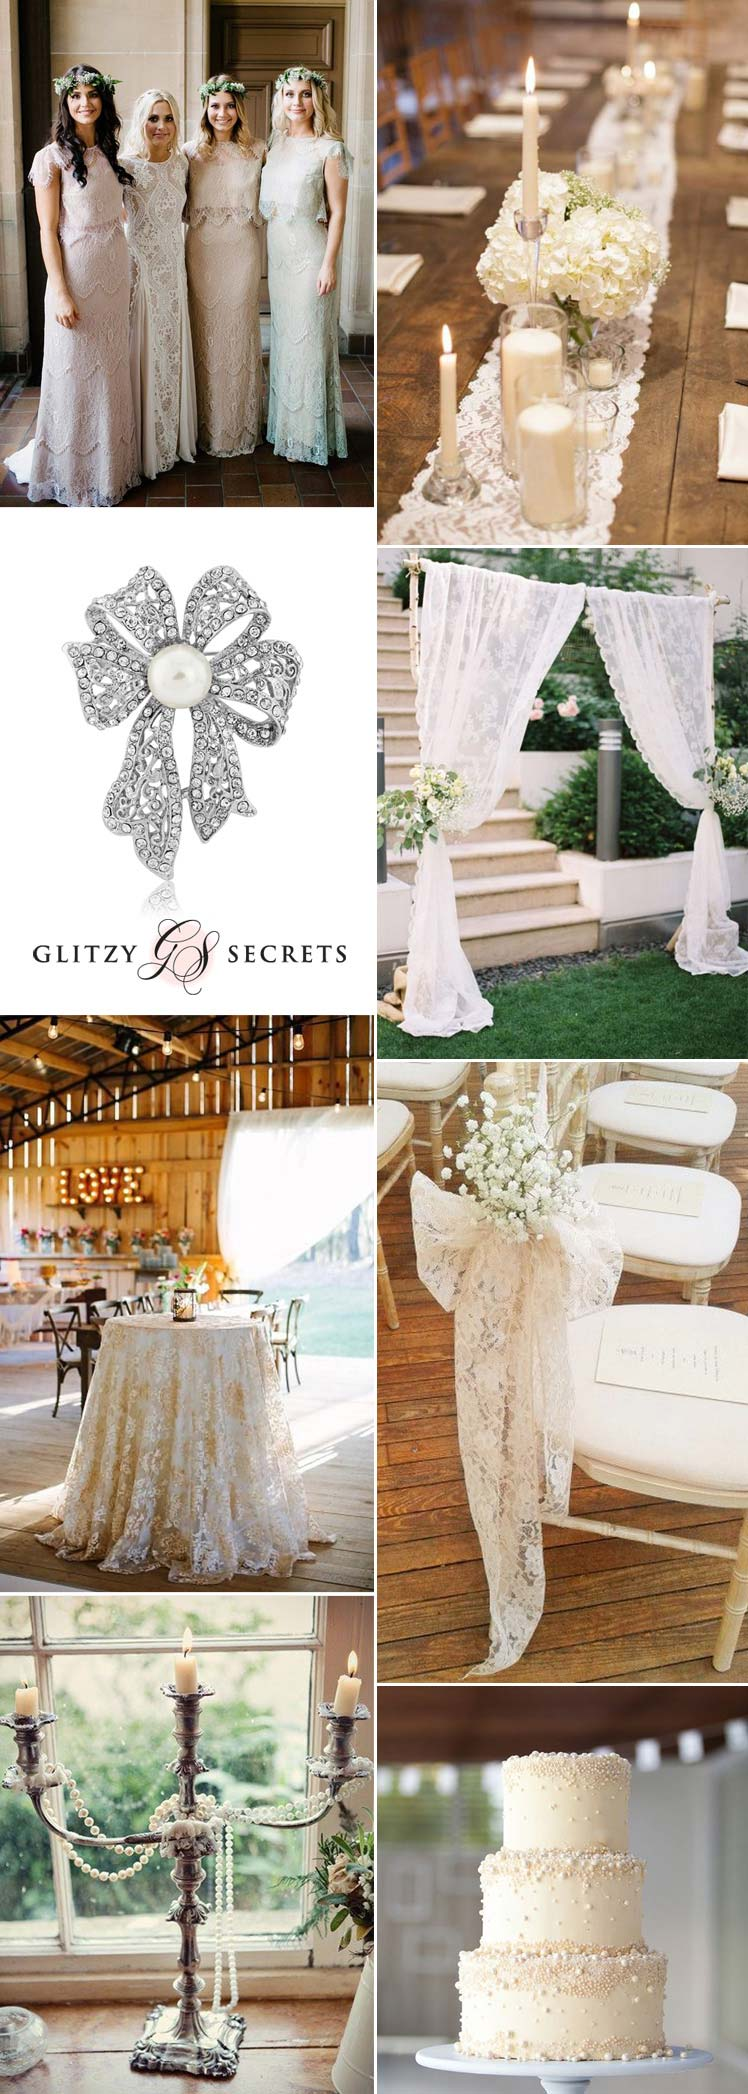 beautiful lace and pearl wedding ideas